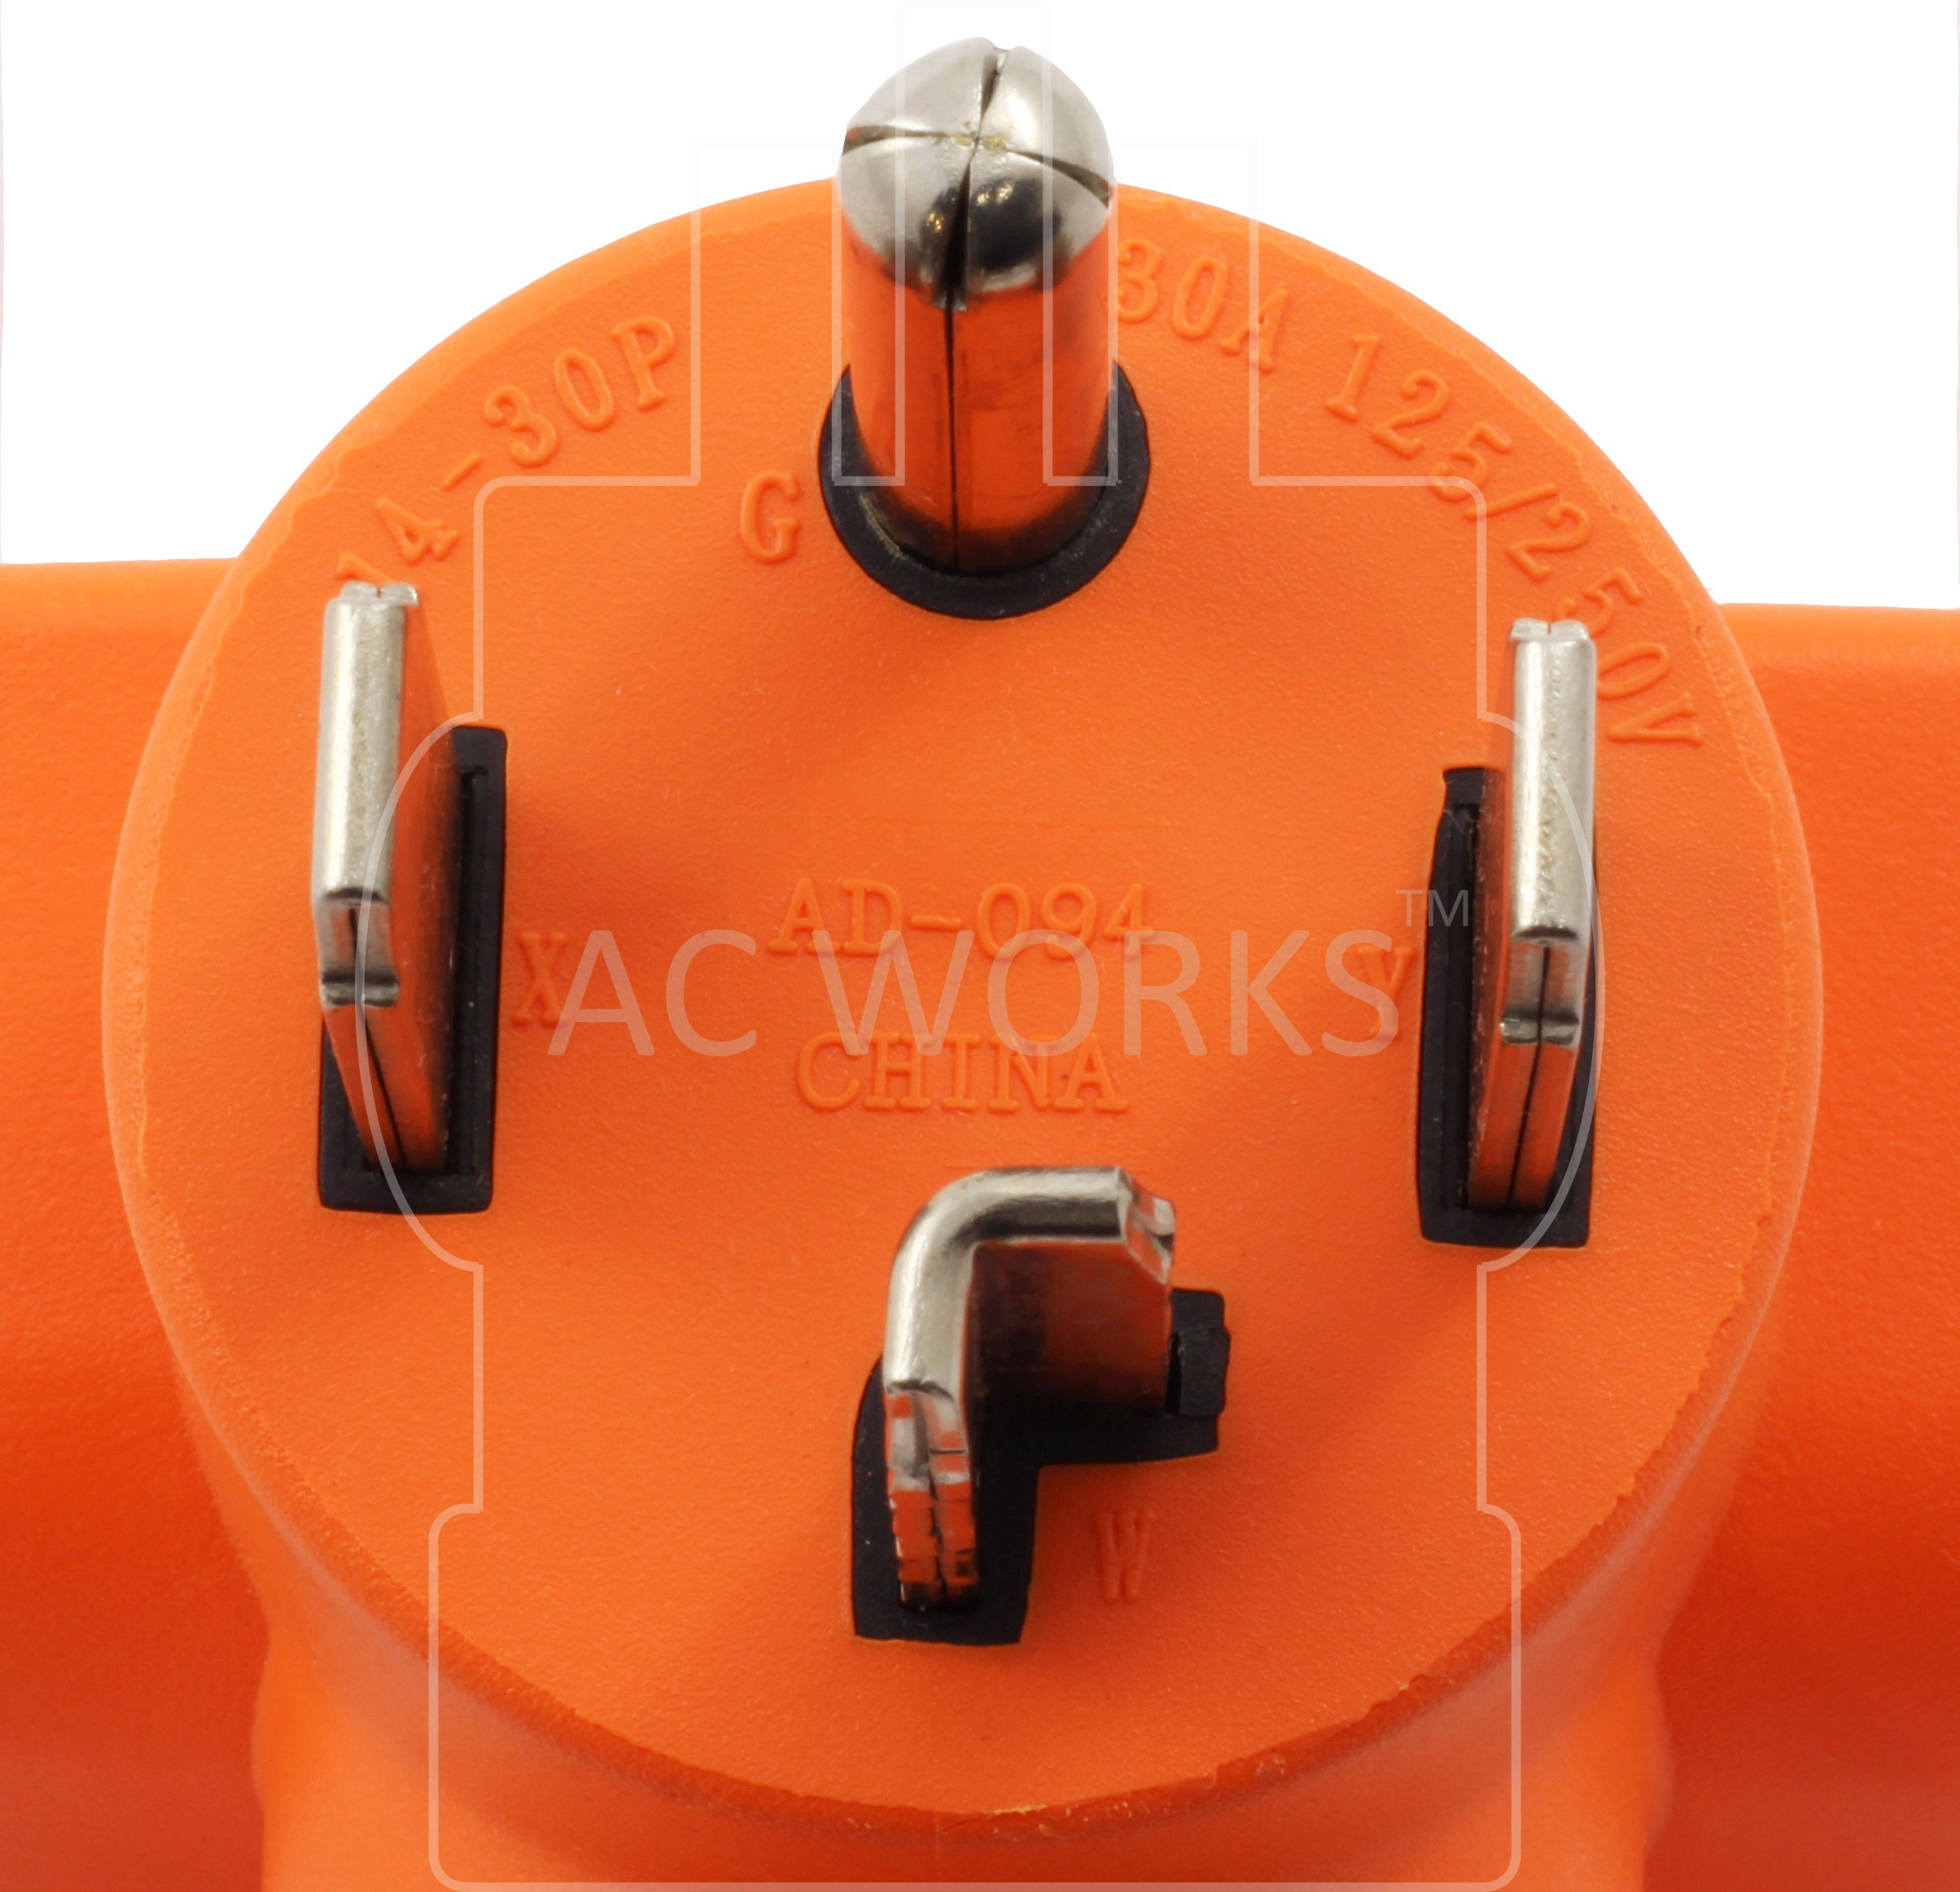 AC WORKS [AD1430L630] Plug Adapter NEMA 14-30P 4-Prong 30Amp Dryer Outlet to L6-30R 30Amp 250Volt Locking Female Connector by AC WORKS (Image #3)